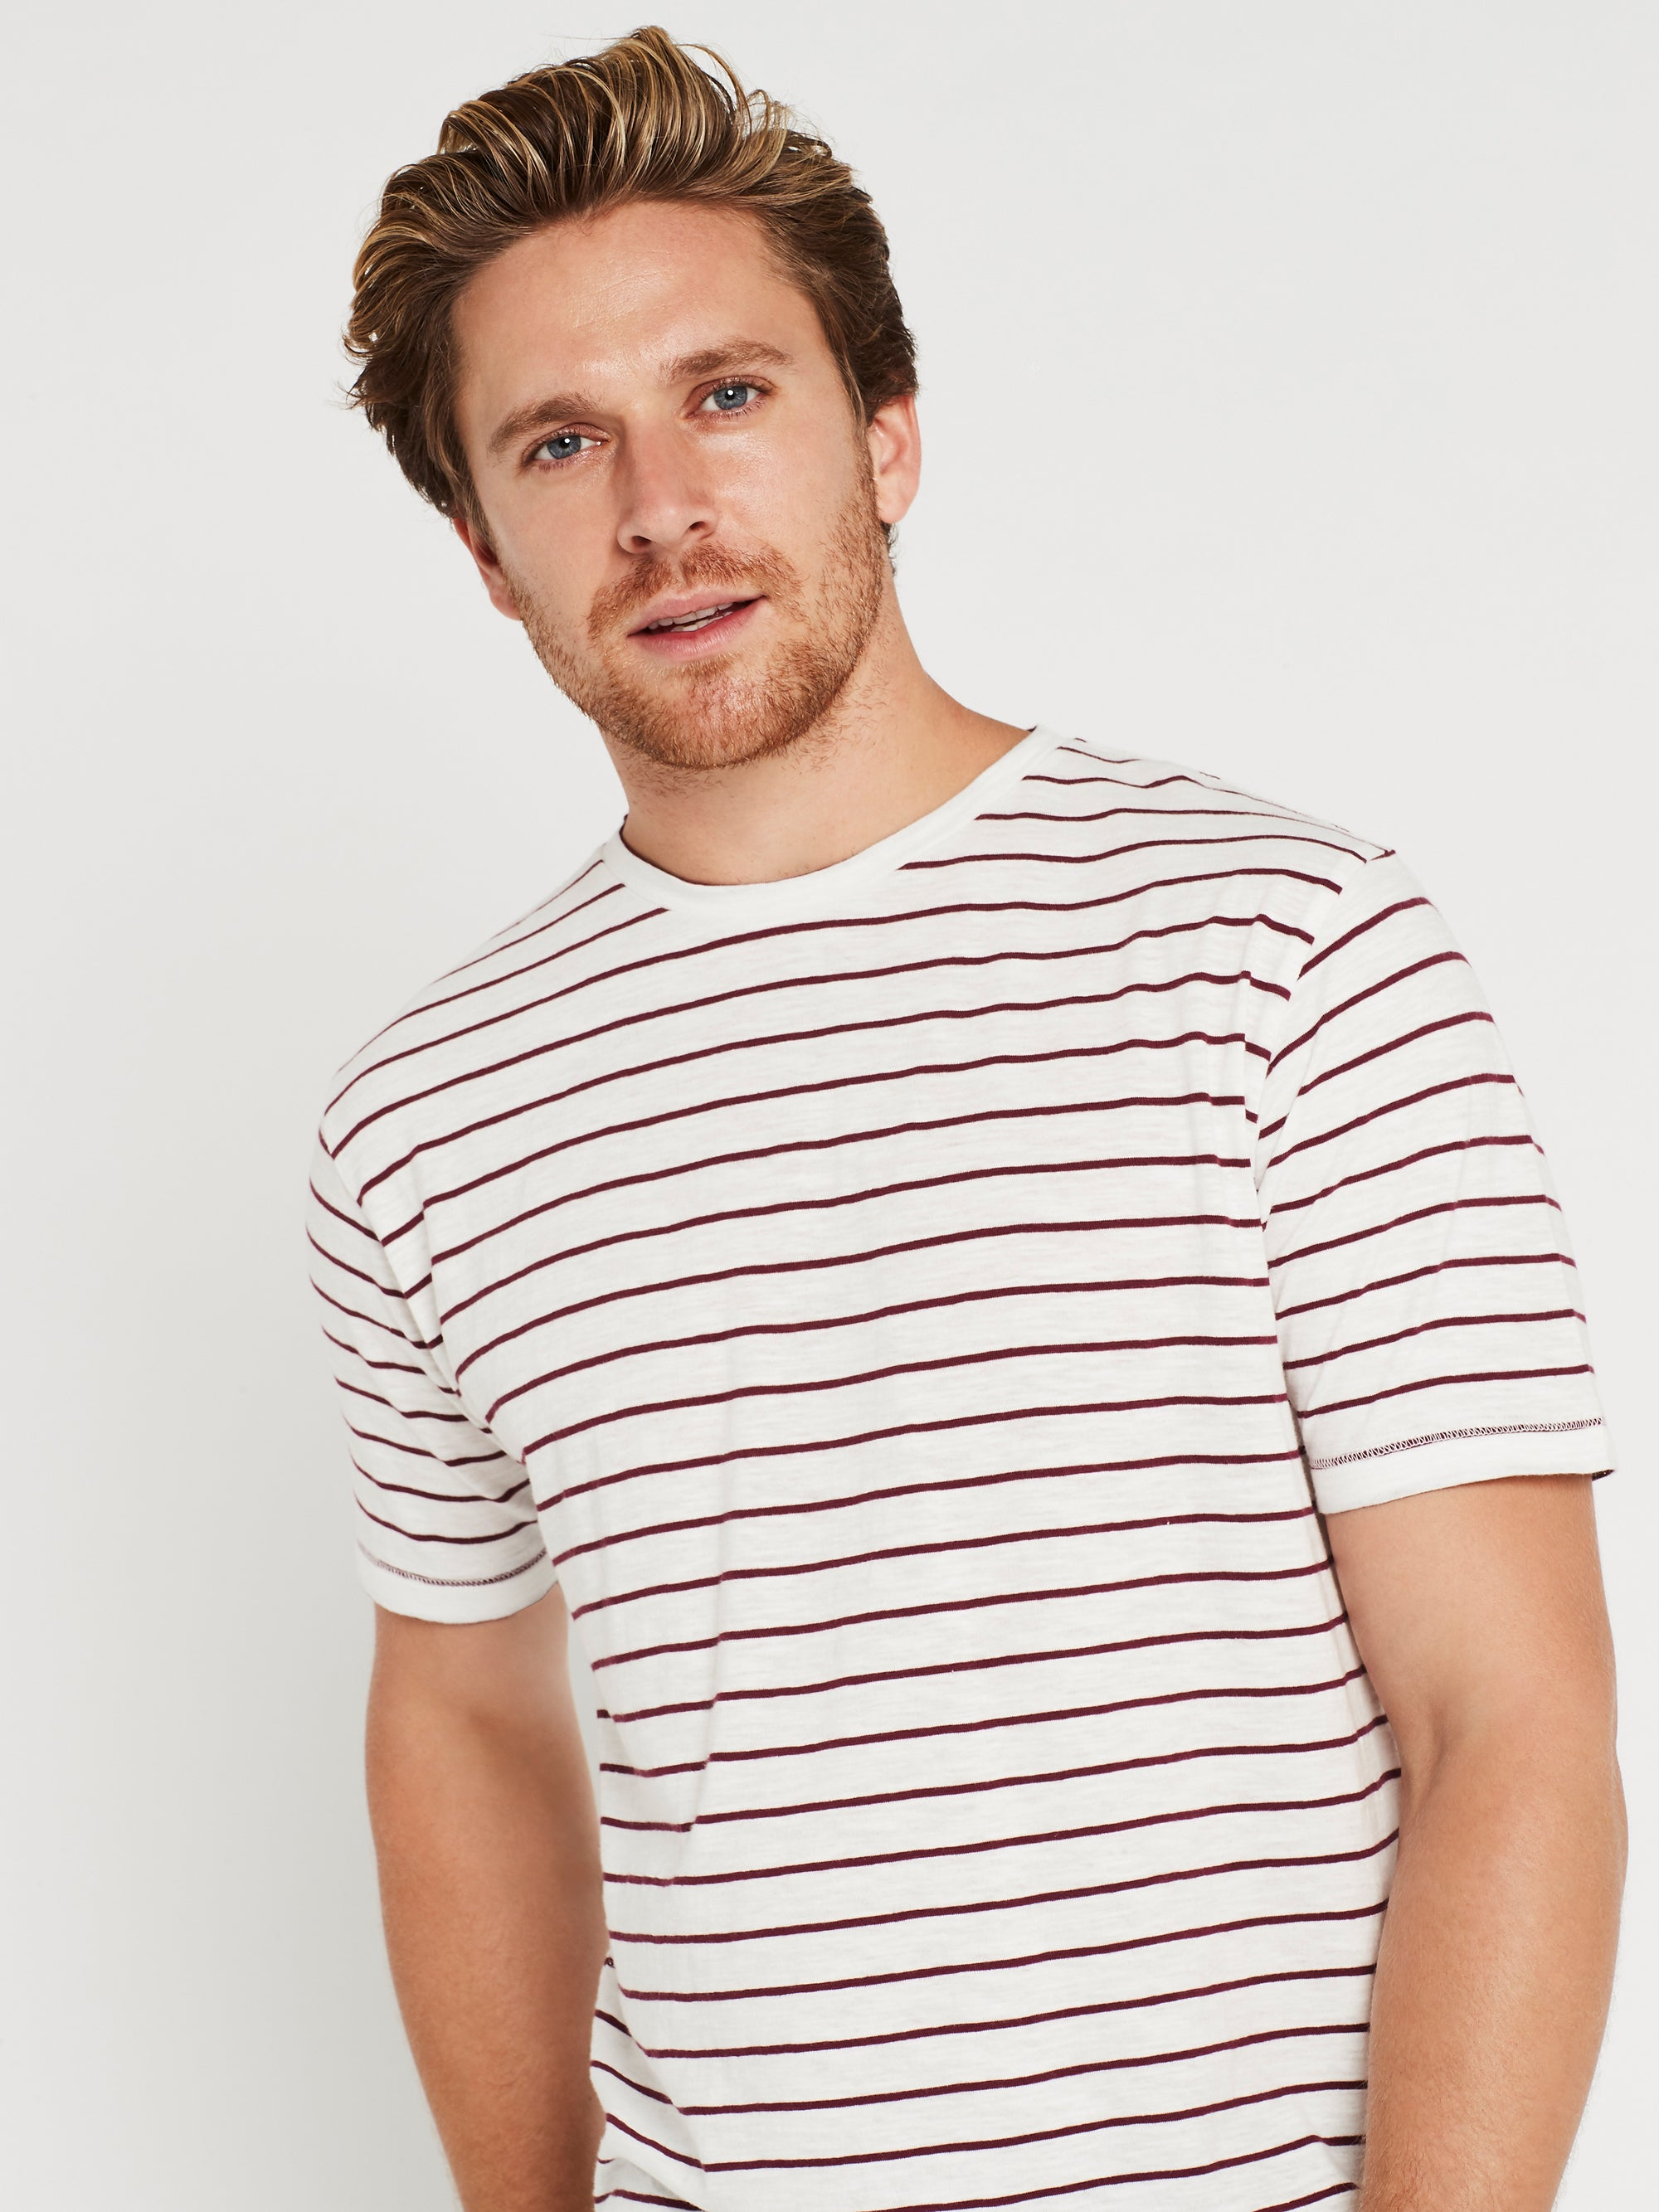 Liam Crew Neck T-Shirt in Off White & Burgundy Stripe